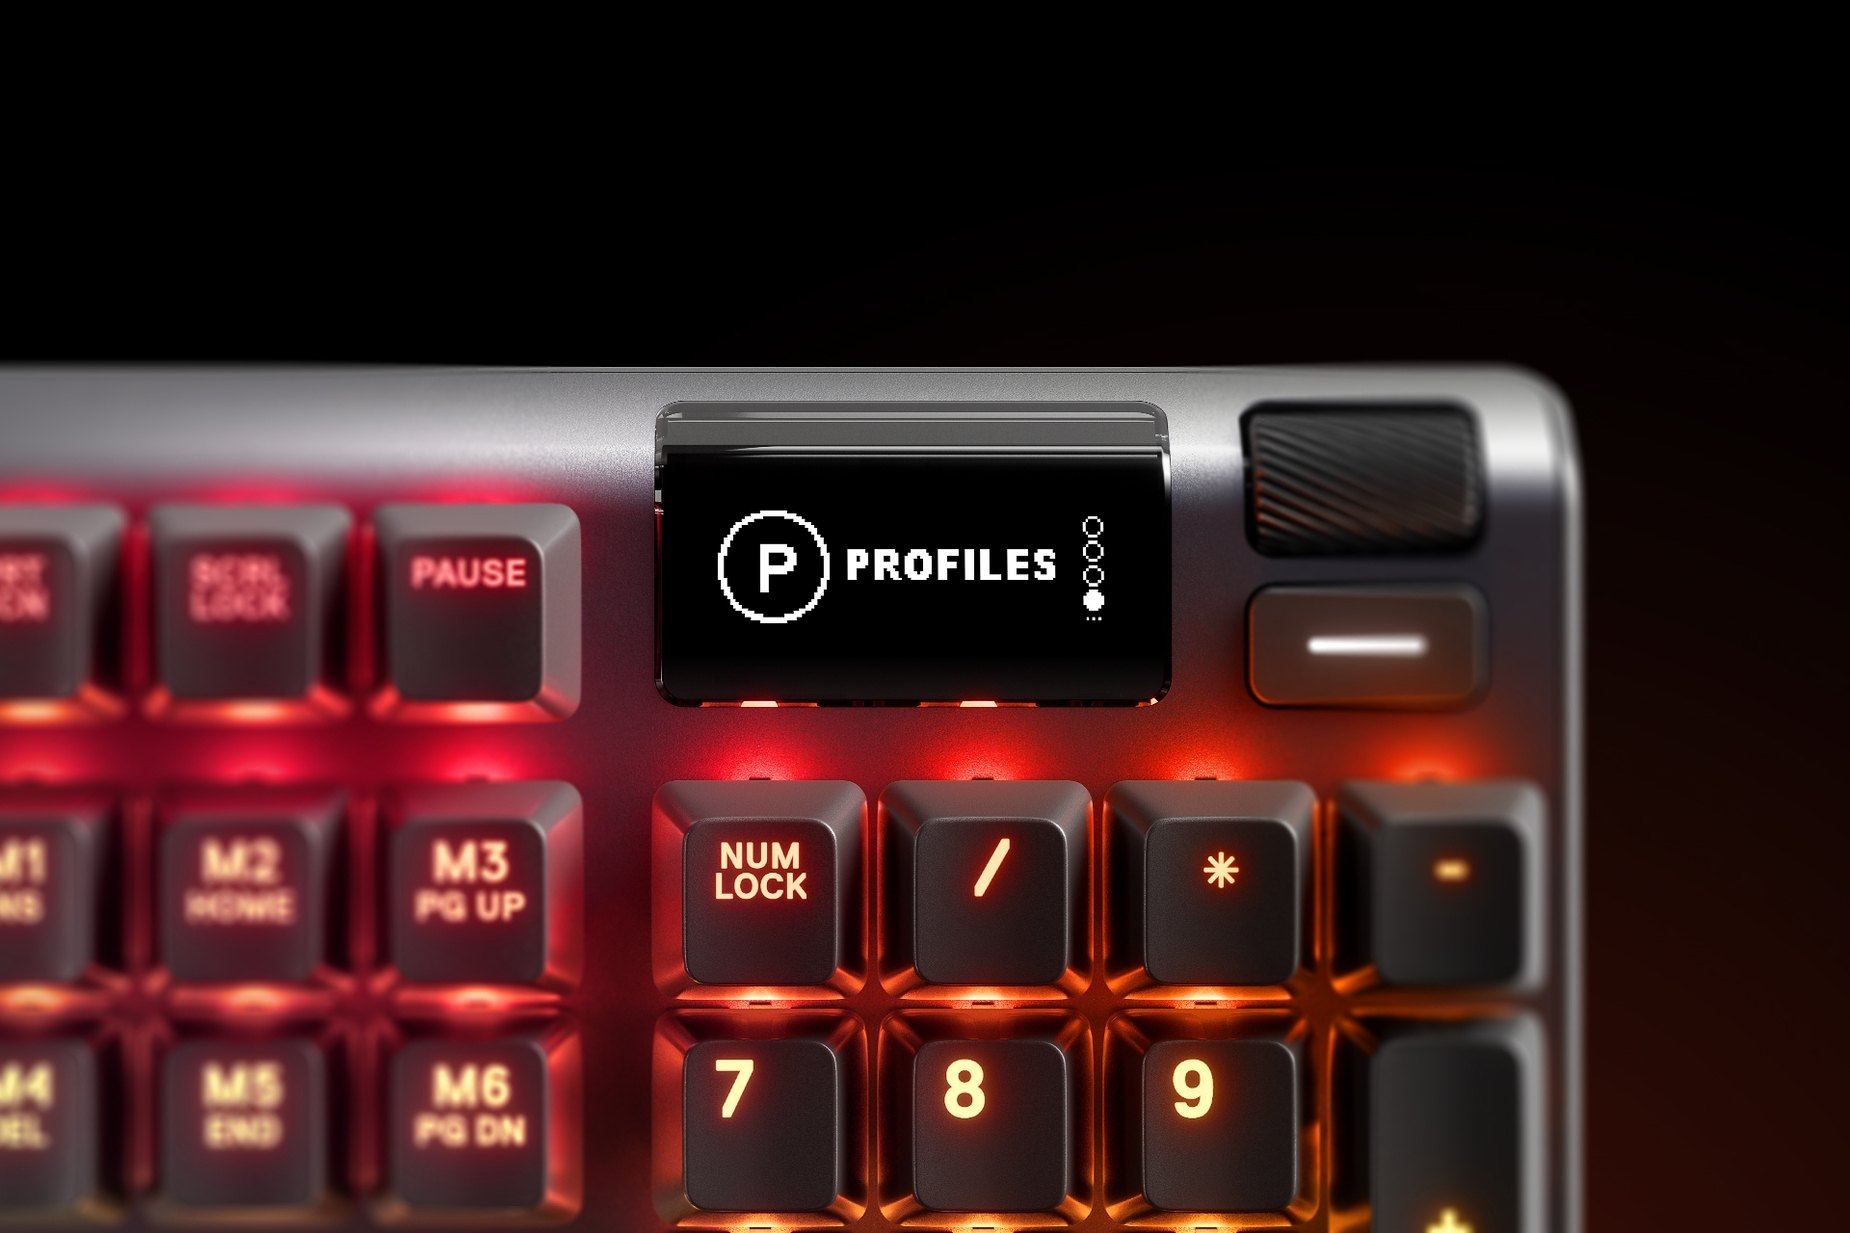 Zoomed in view of the multimedia and settings controls/volume roller on the Japanese - APEX PRO gaming keyboard